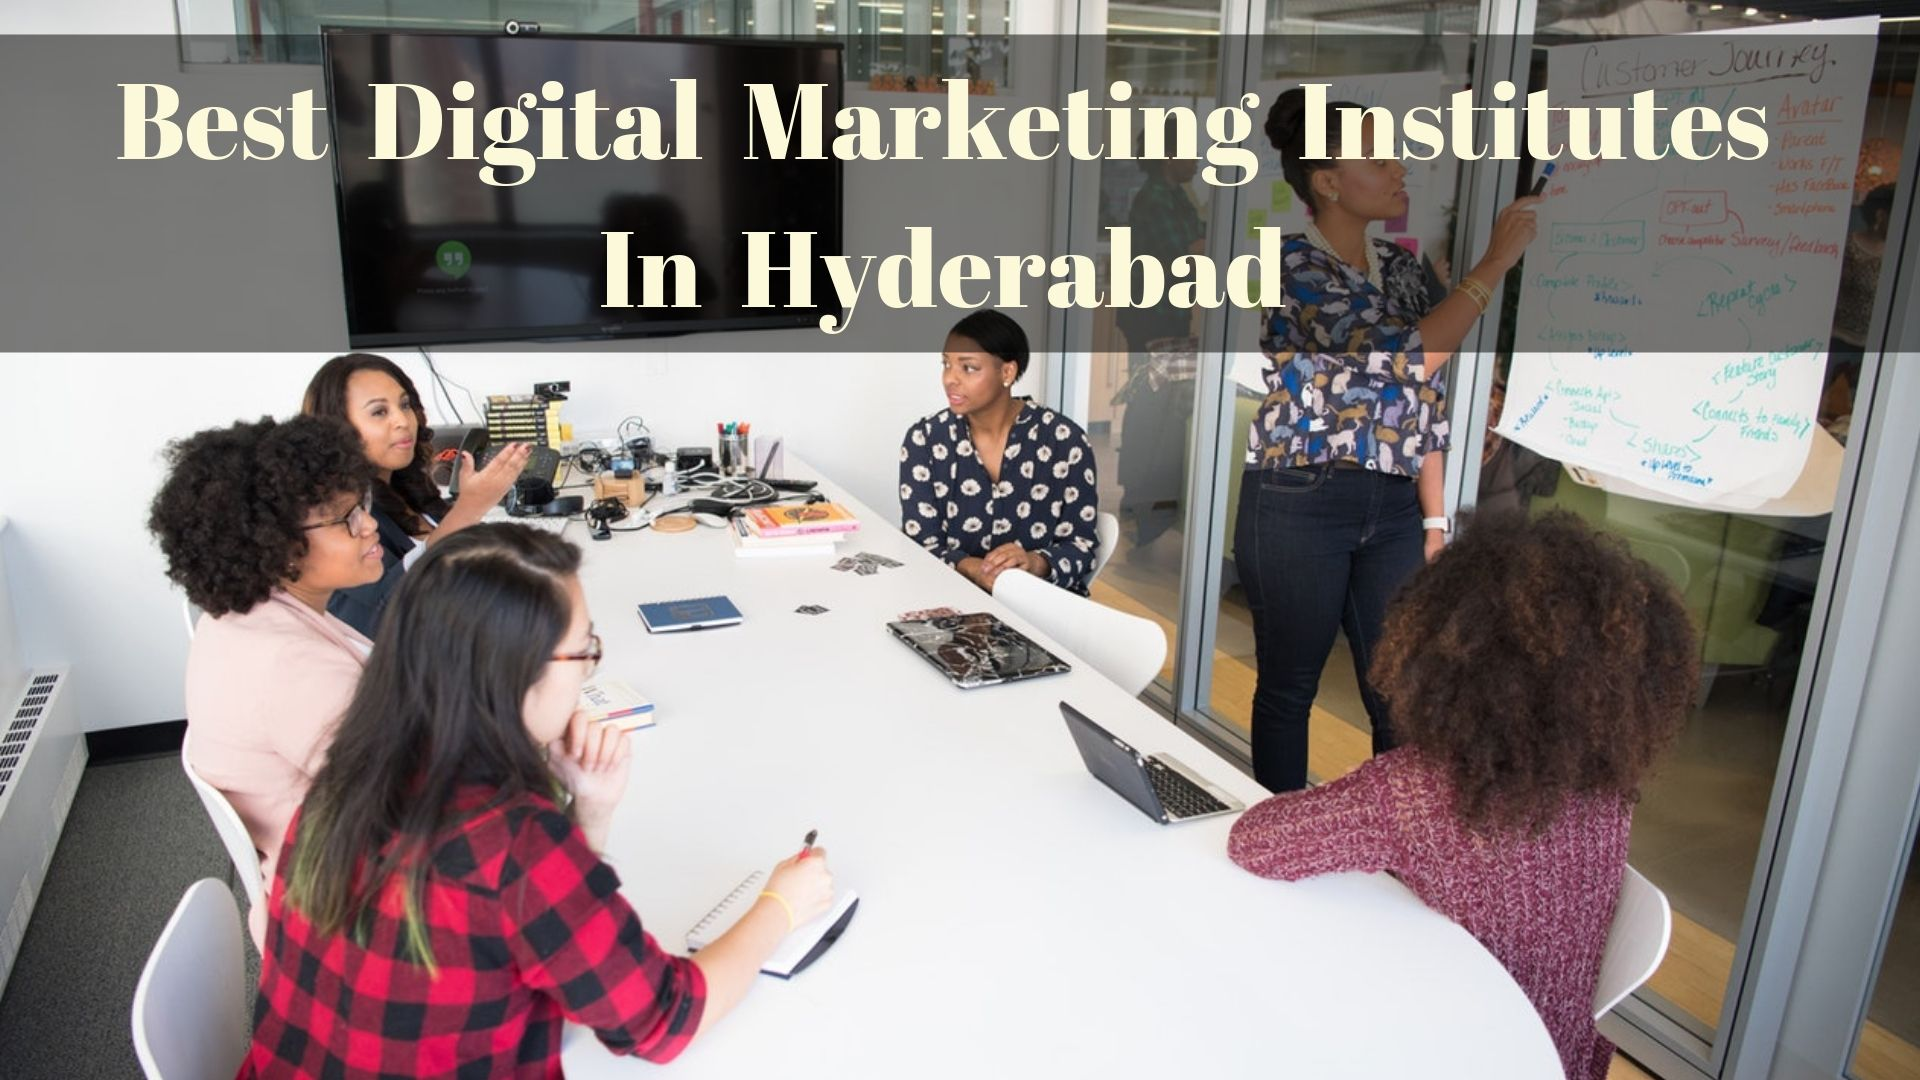 Best Digital Marketing Institutes in Hyderabad